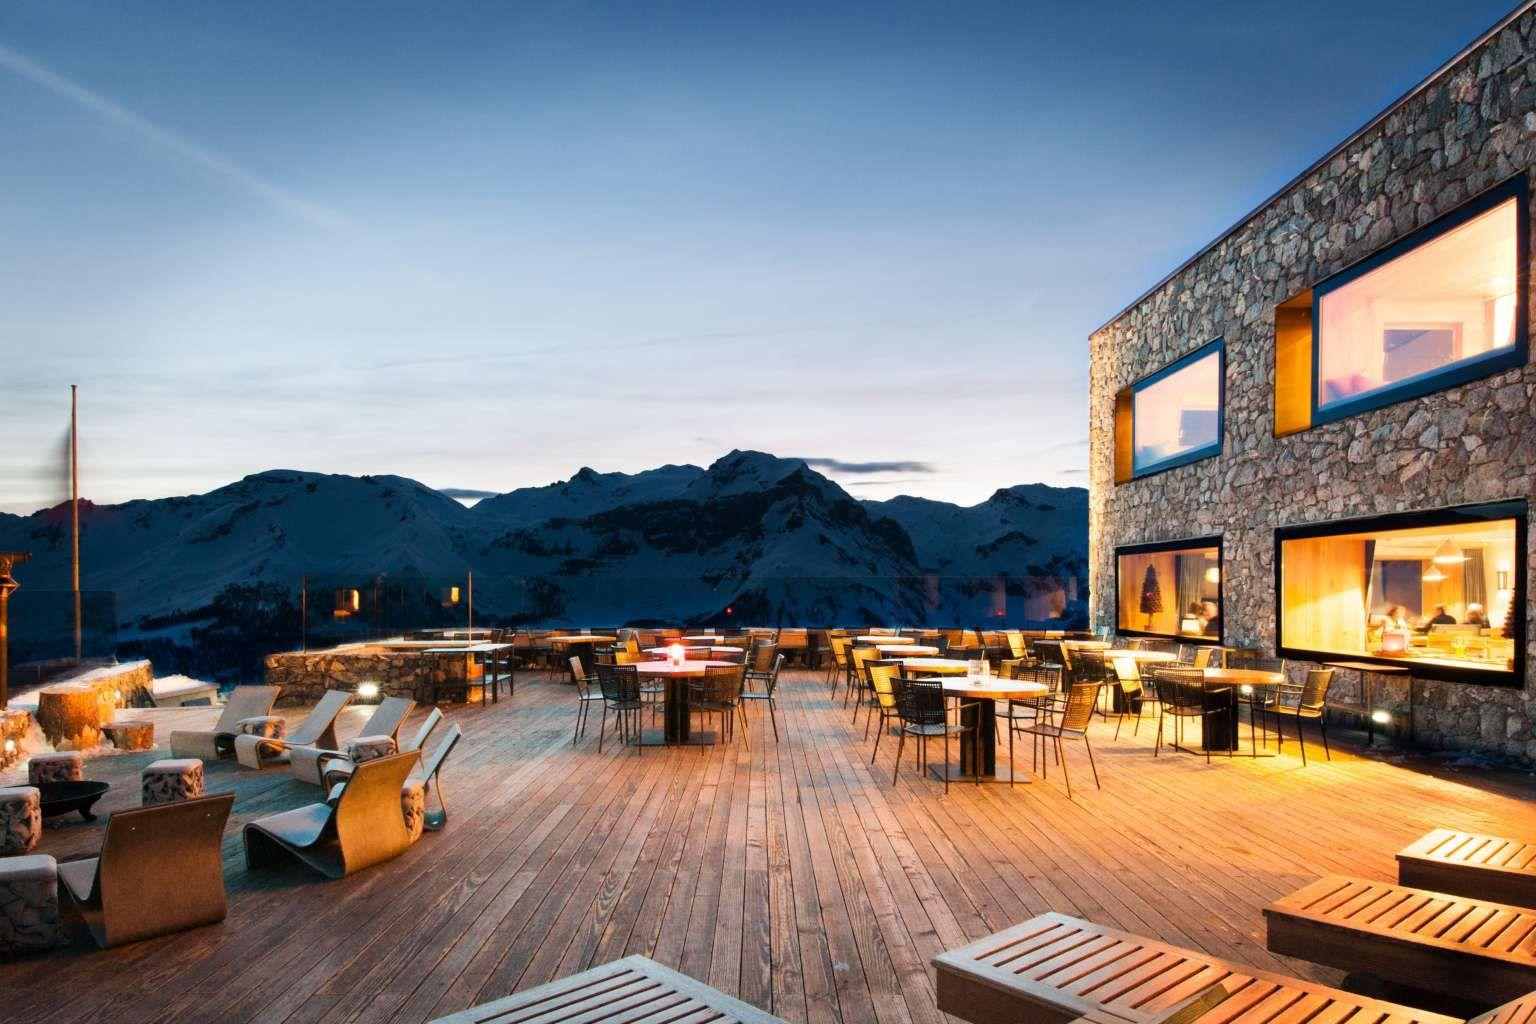 Hotel chetzeron à crans montana suisse luxury hotels switzerland